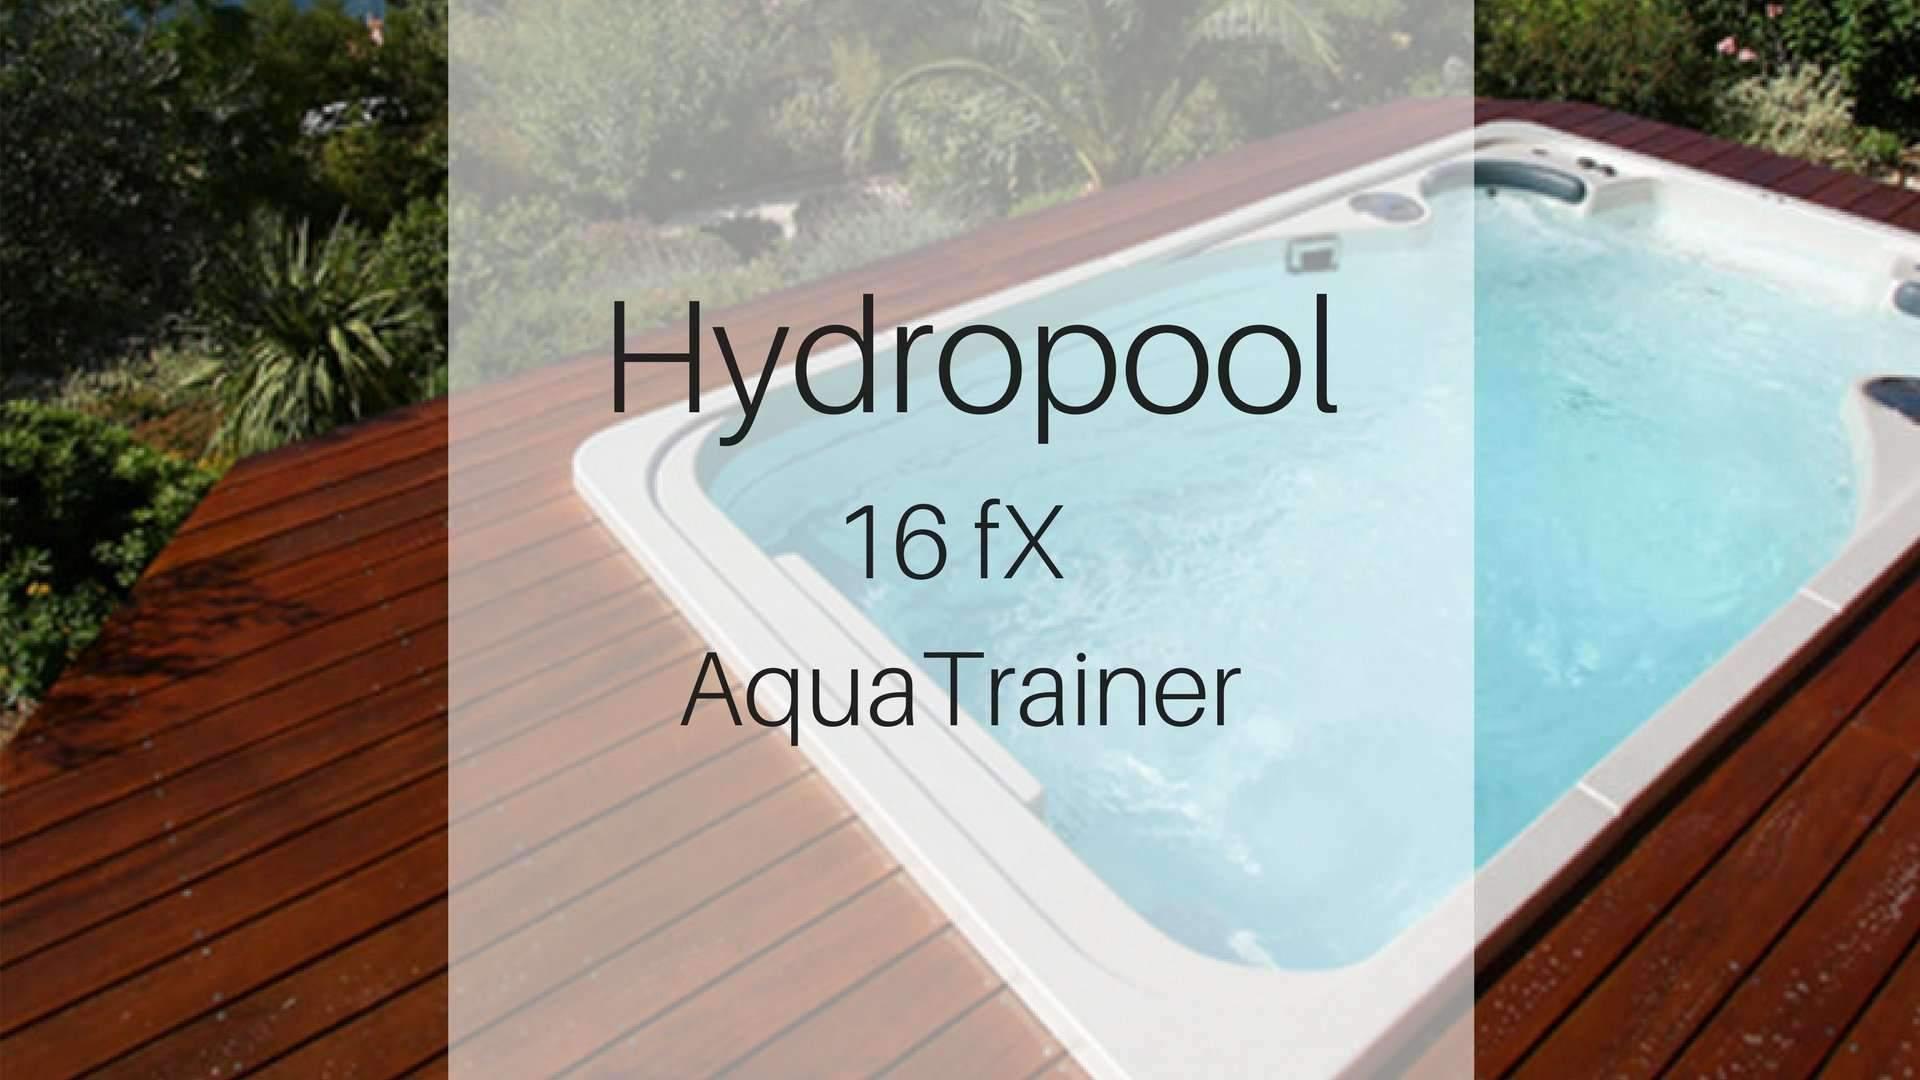 Hydropool 16fX AquaTrainer Swim Spa | Spa Palace